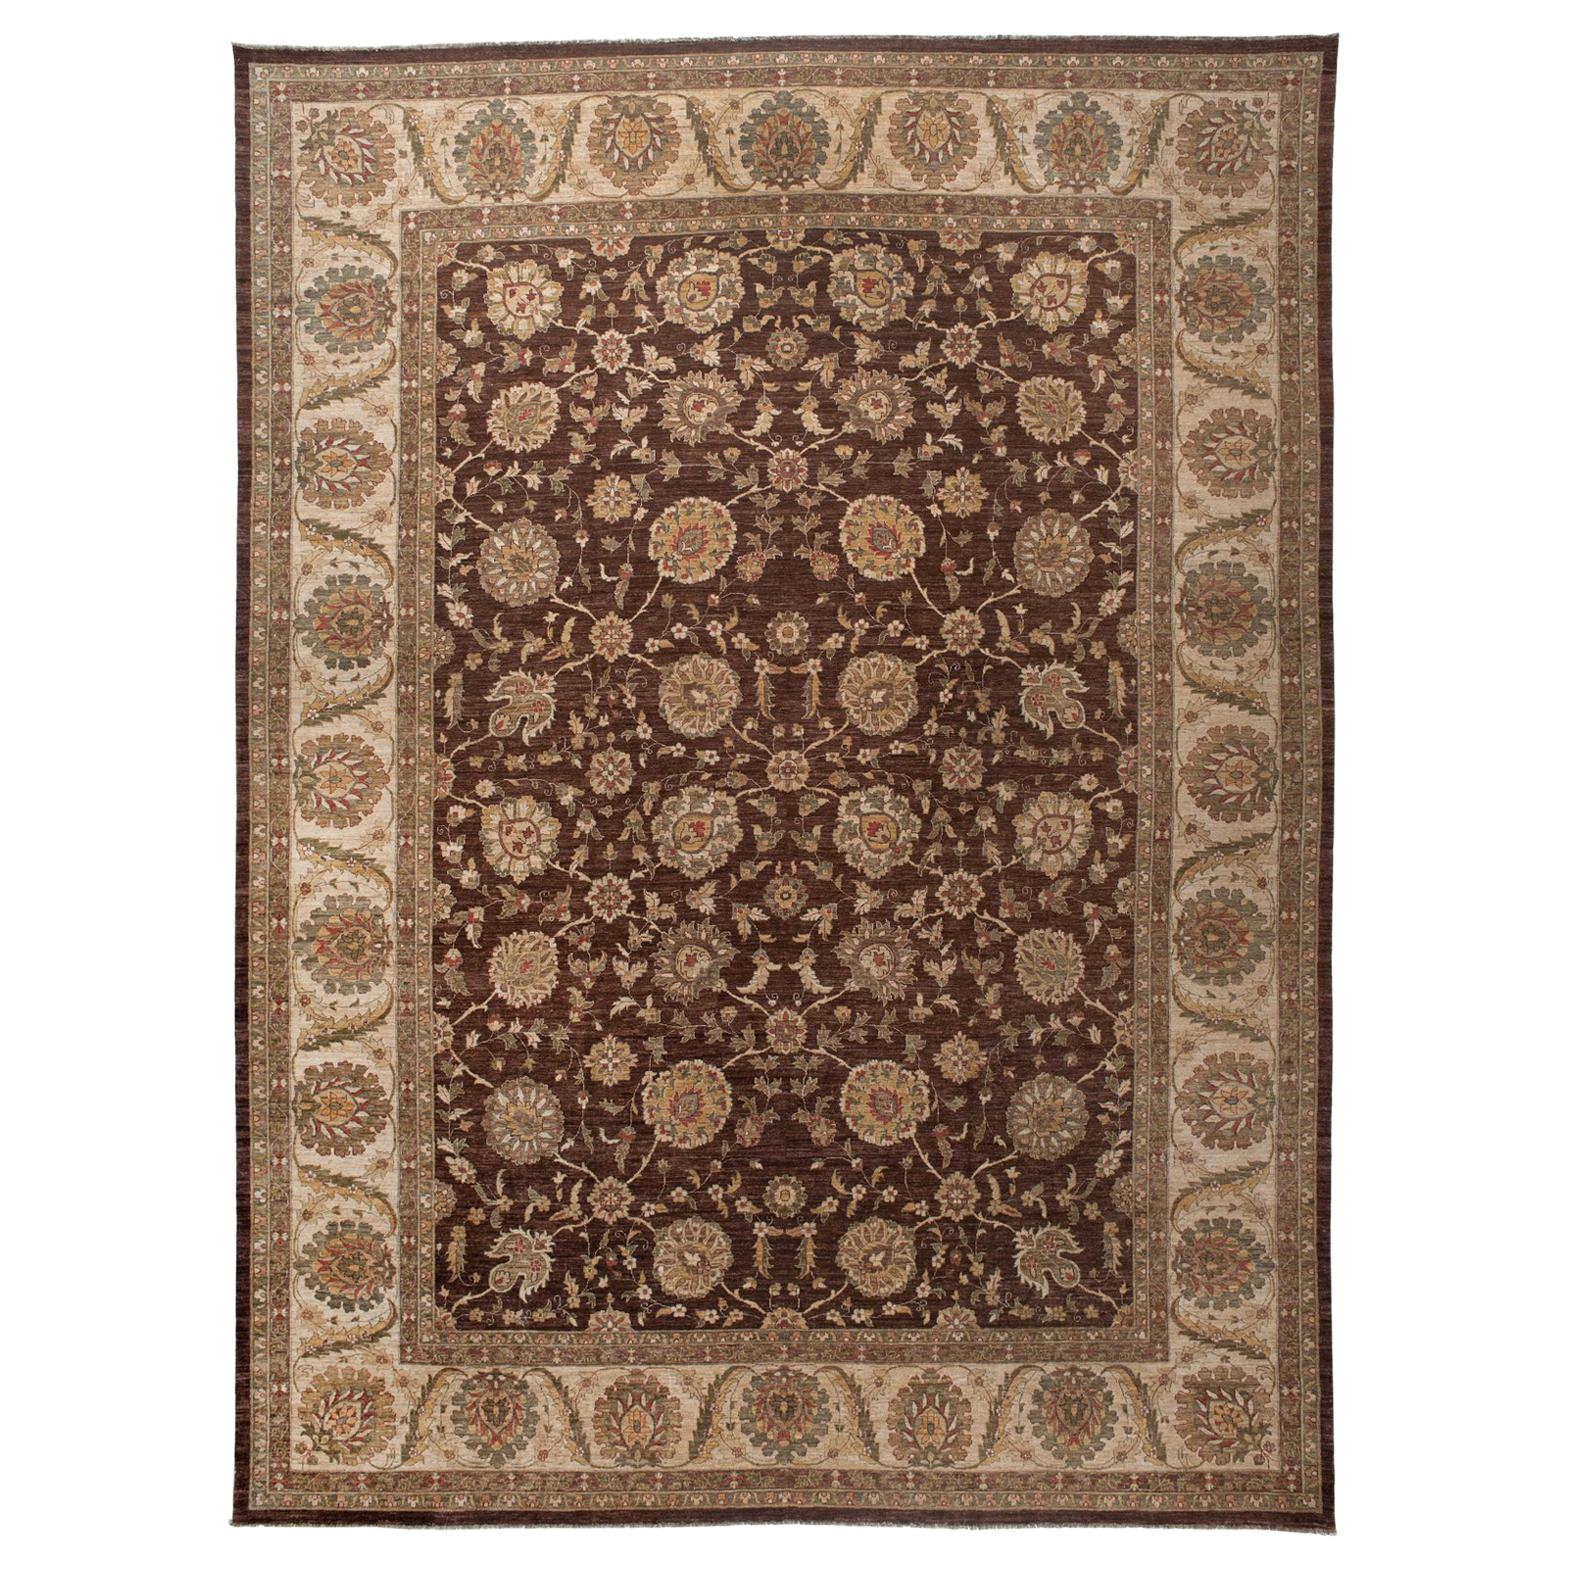 Brown Wool Area Rug with Floral Garland